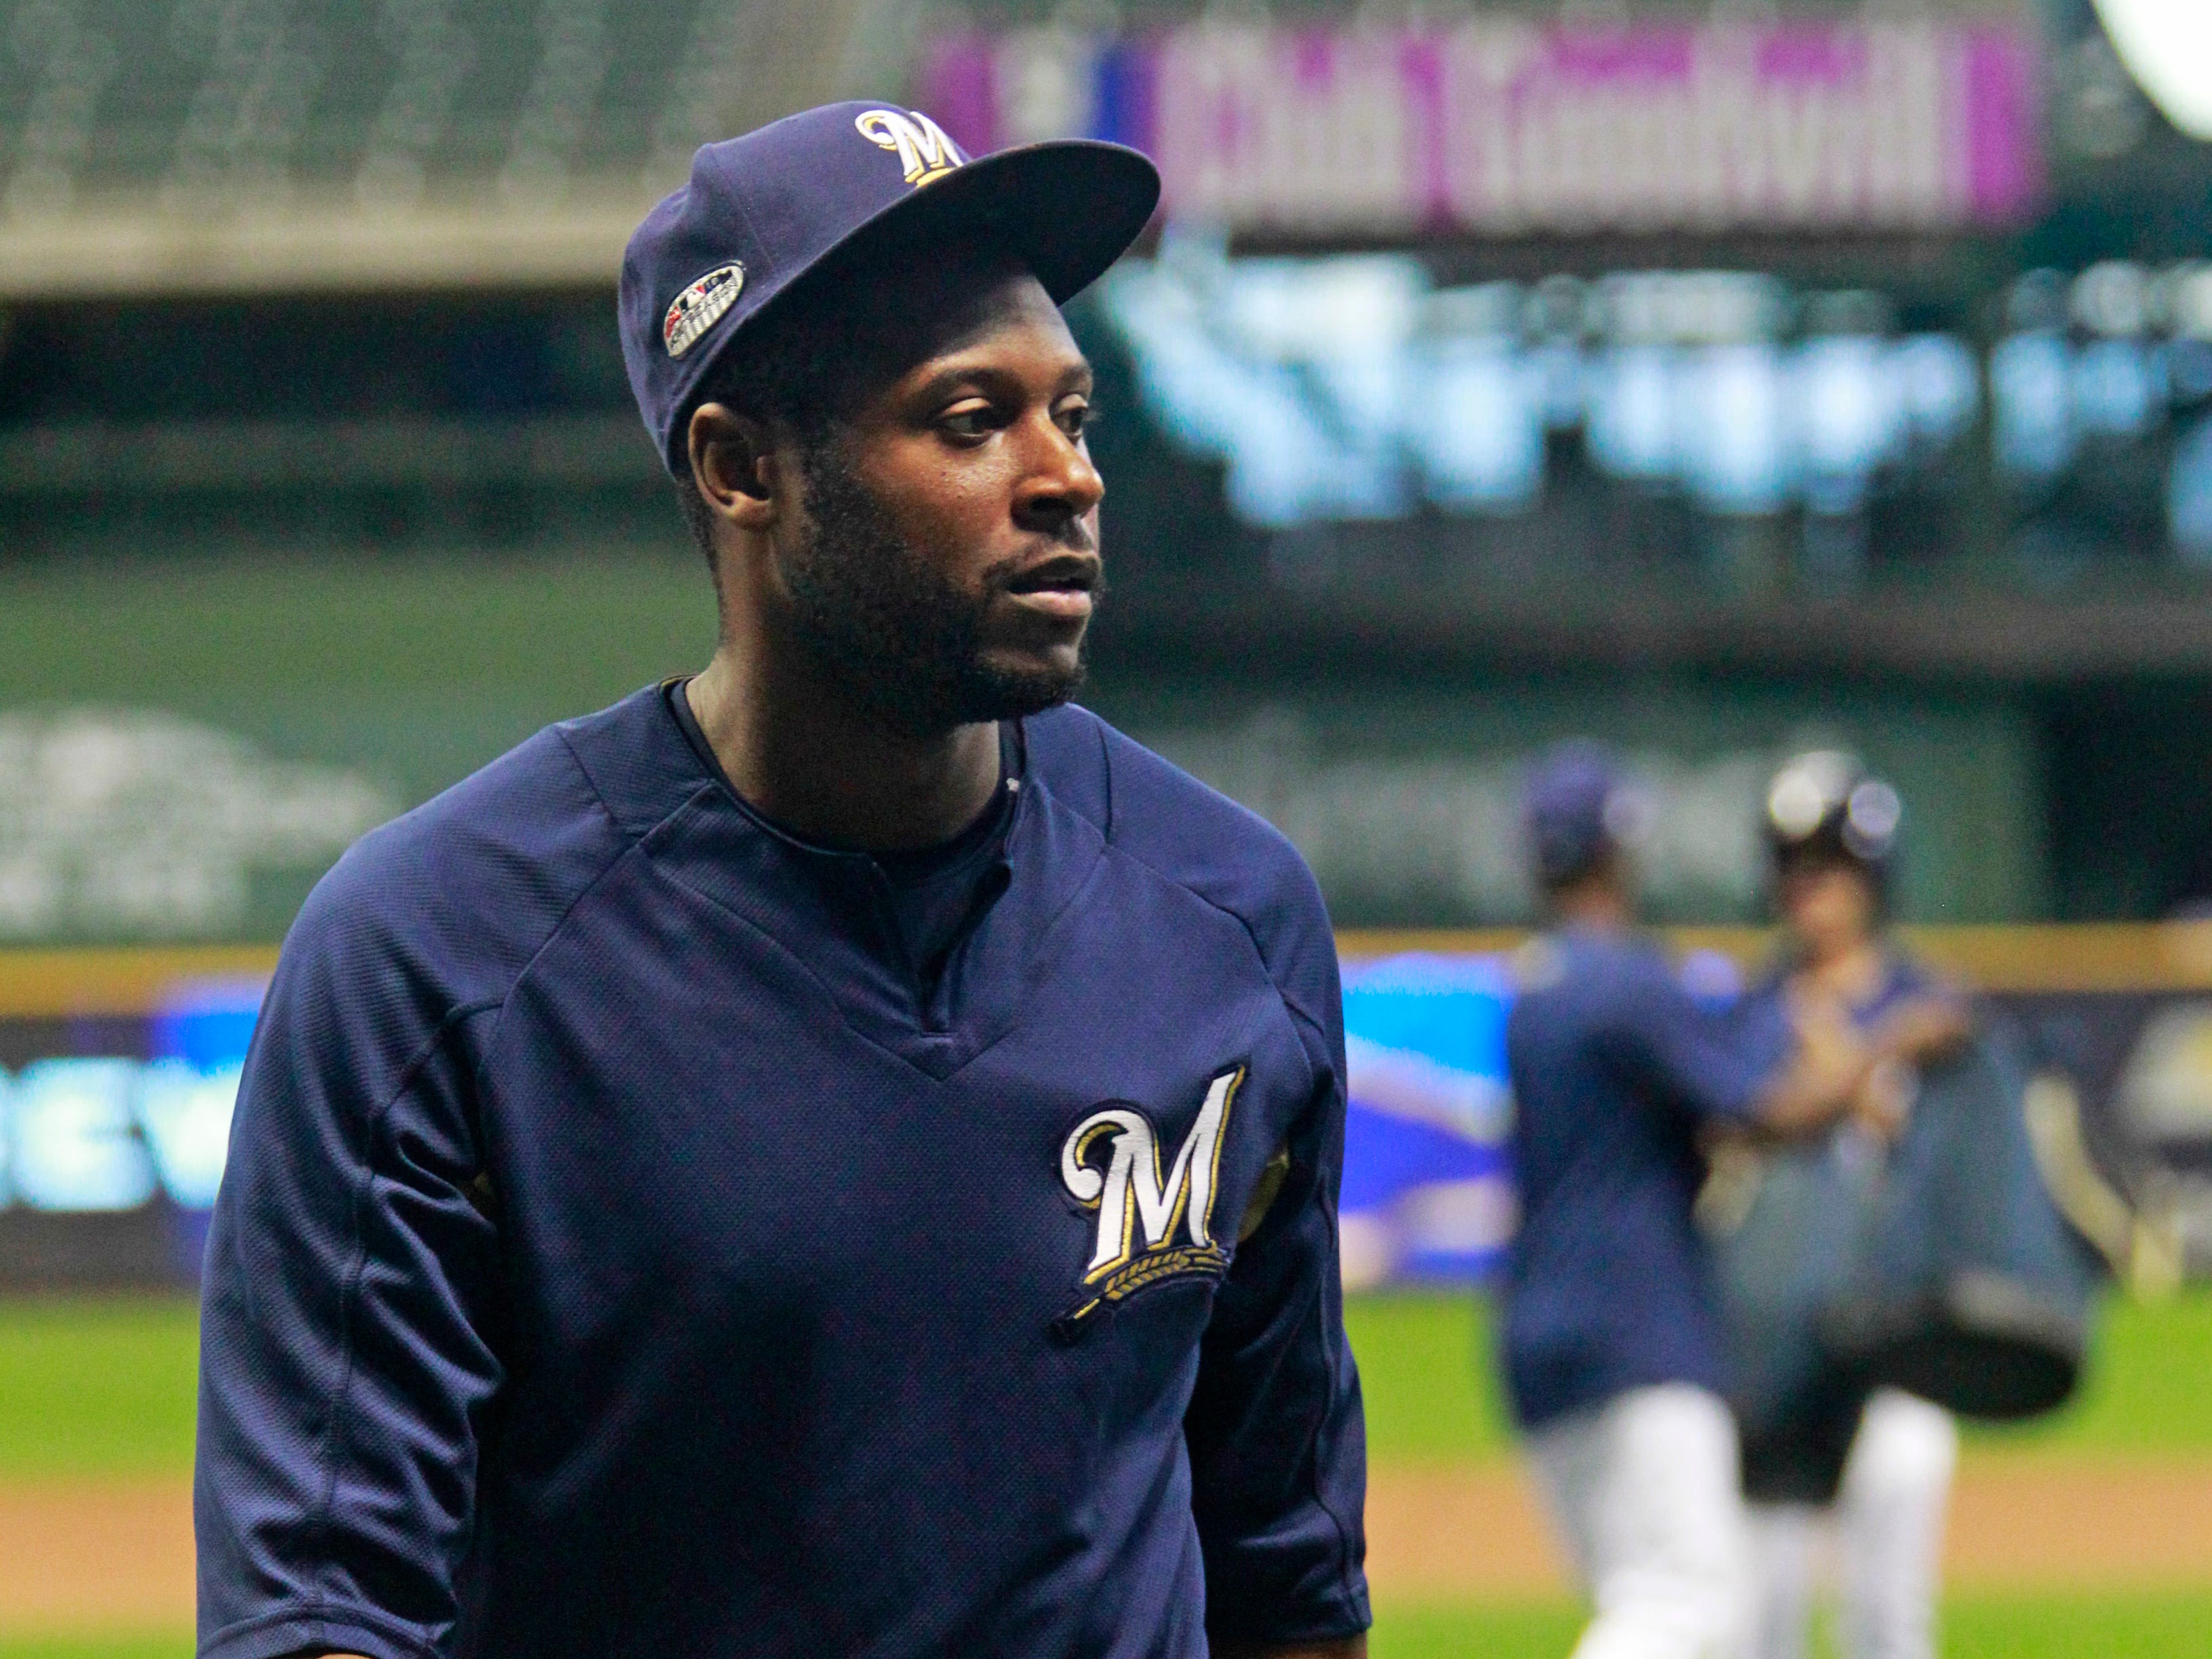 Brewers centerfielder Lorenzo Cain walks off field after practice on Wednesday at Miller Park.